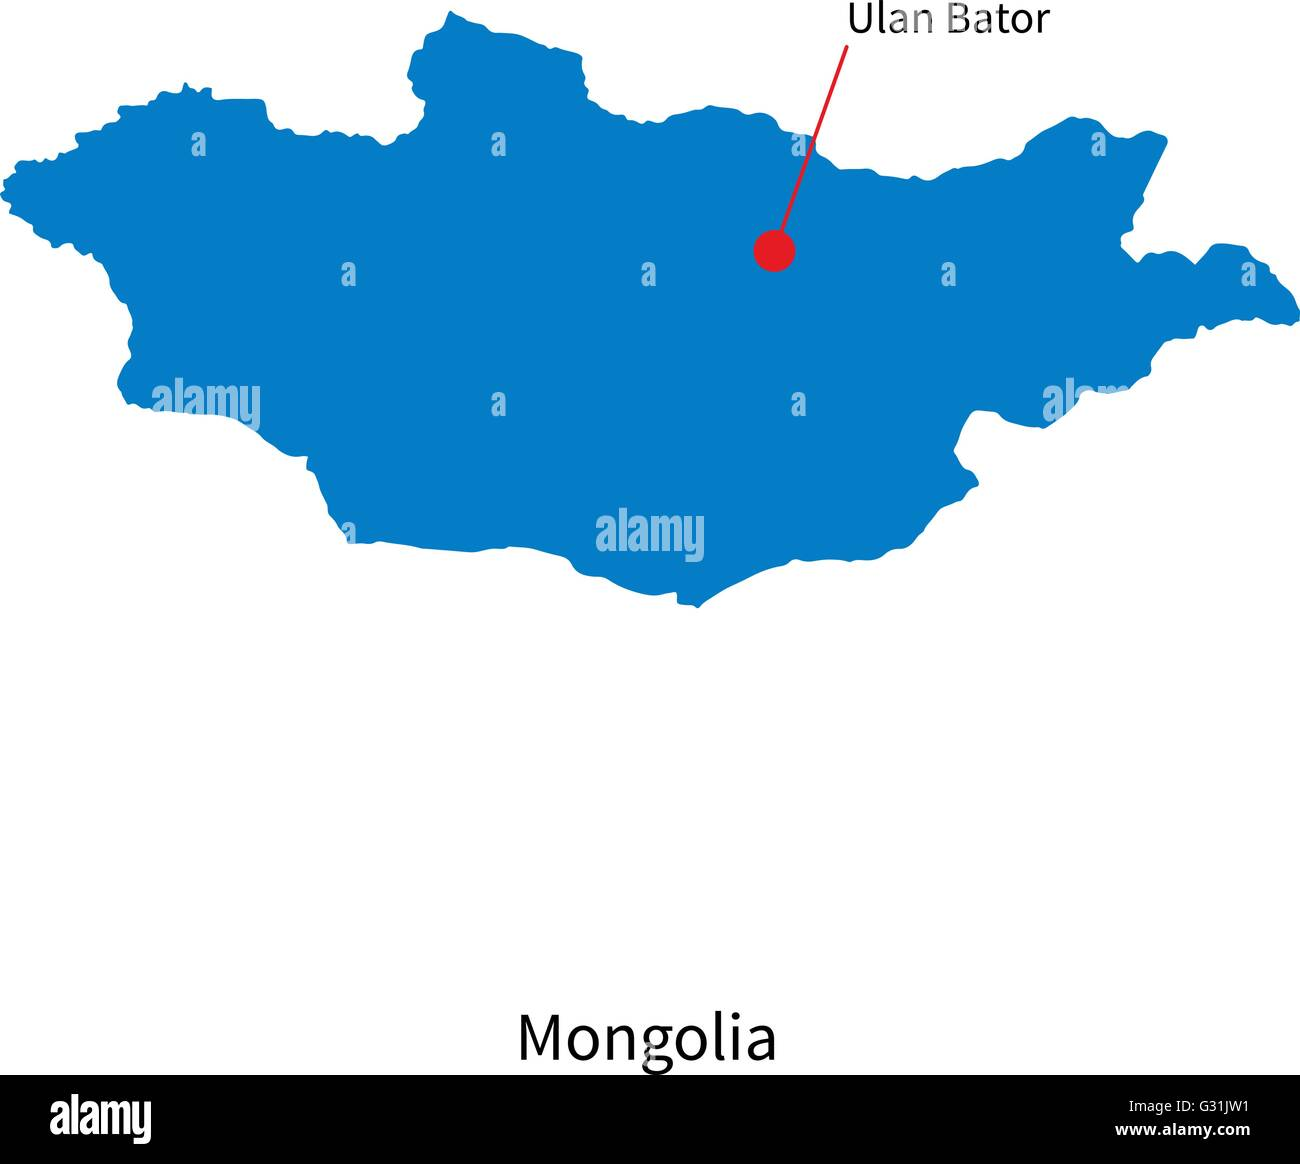 Detailed vector map of Mongolia and capital city Ulan Bator - Stock Vector